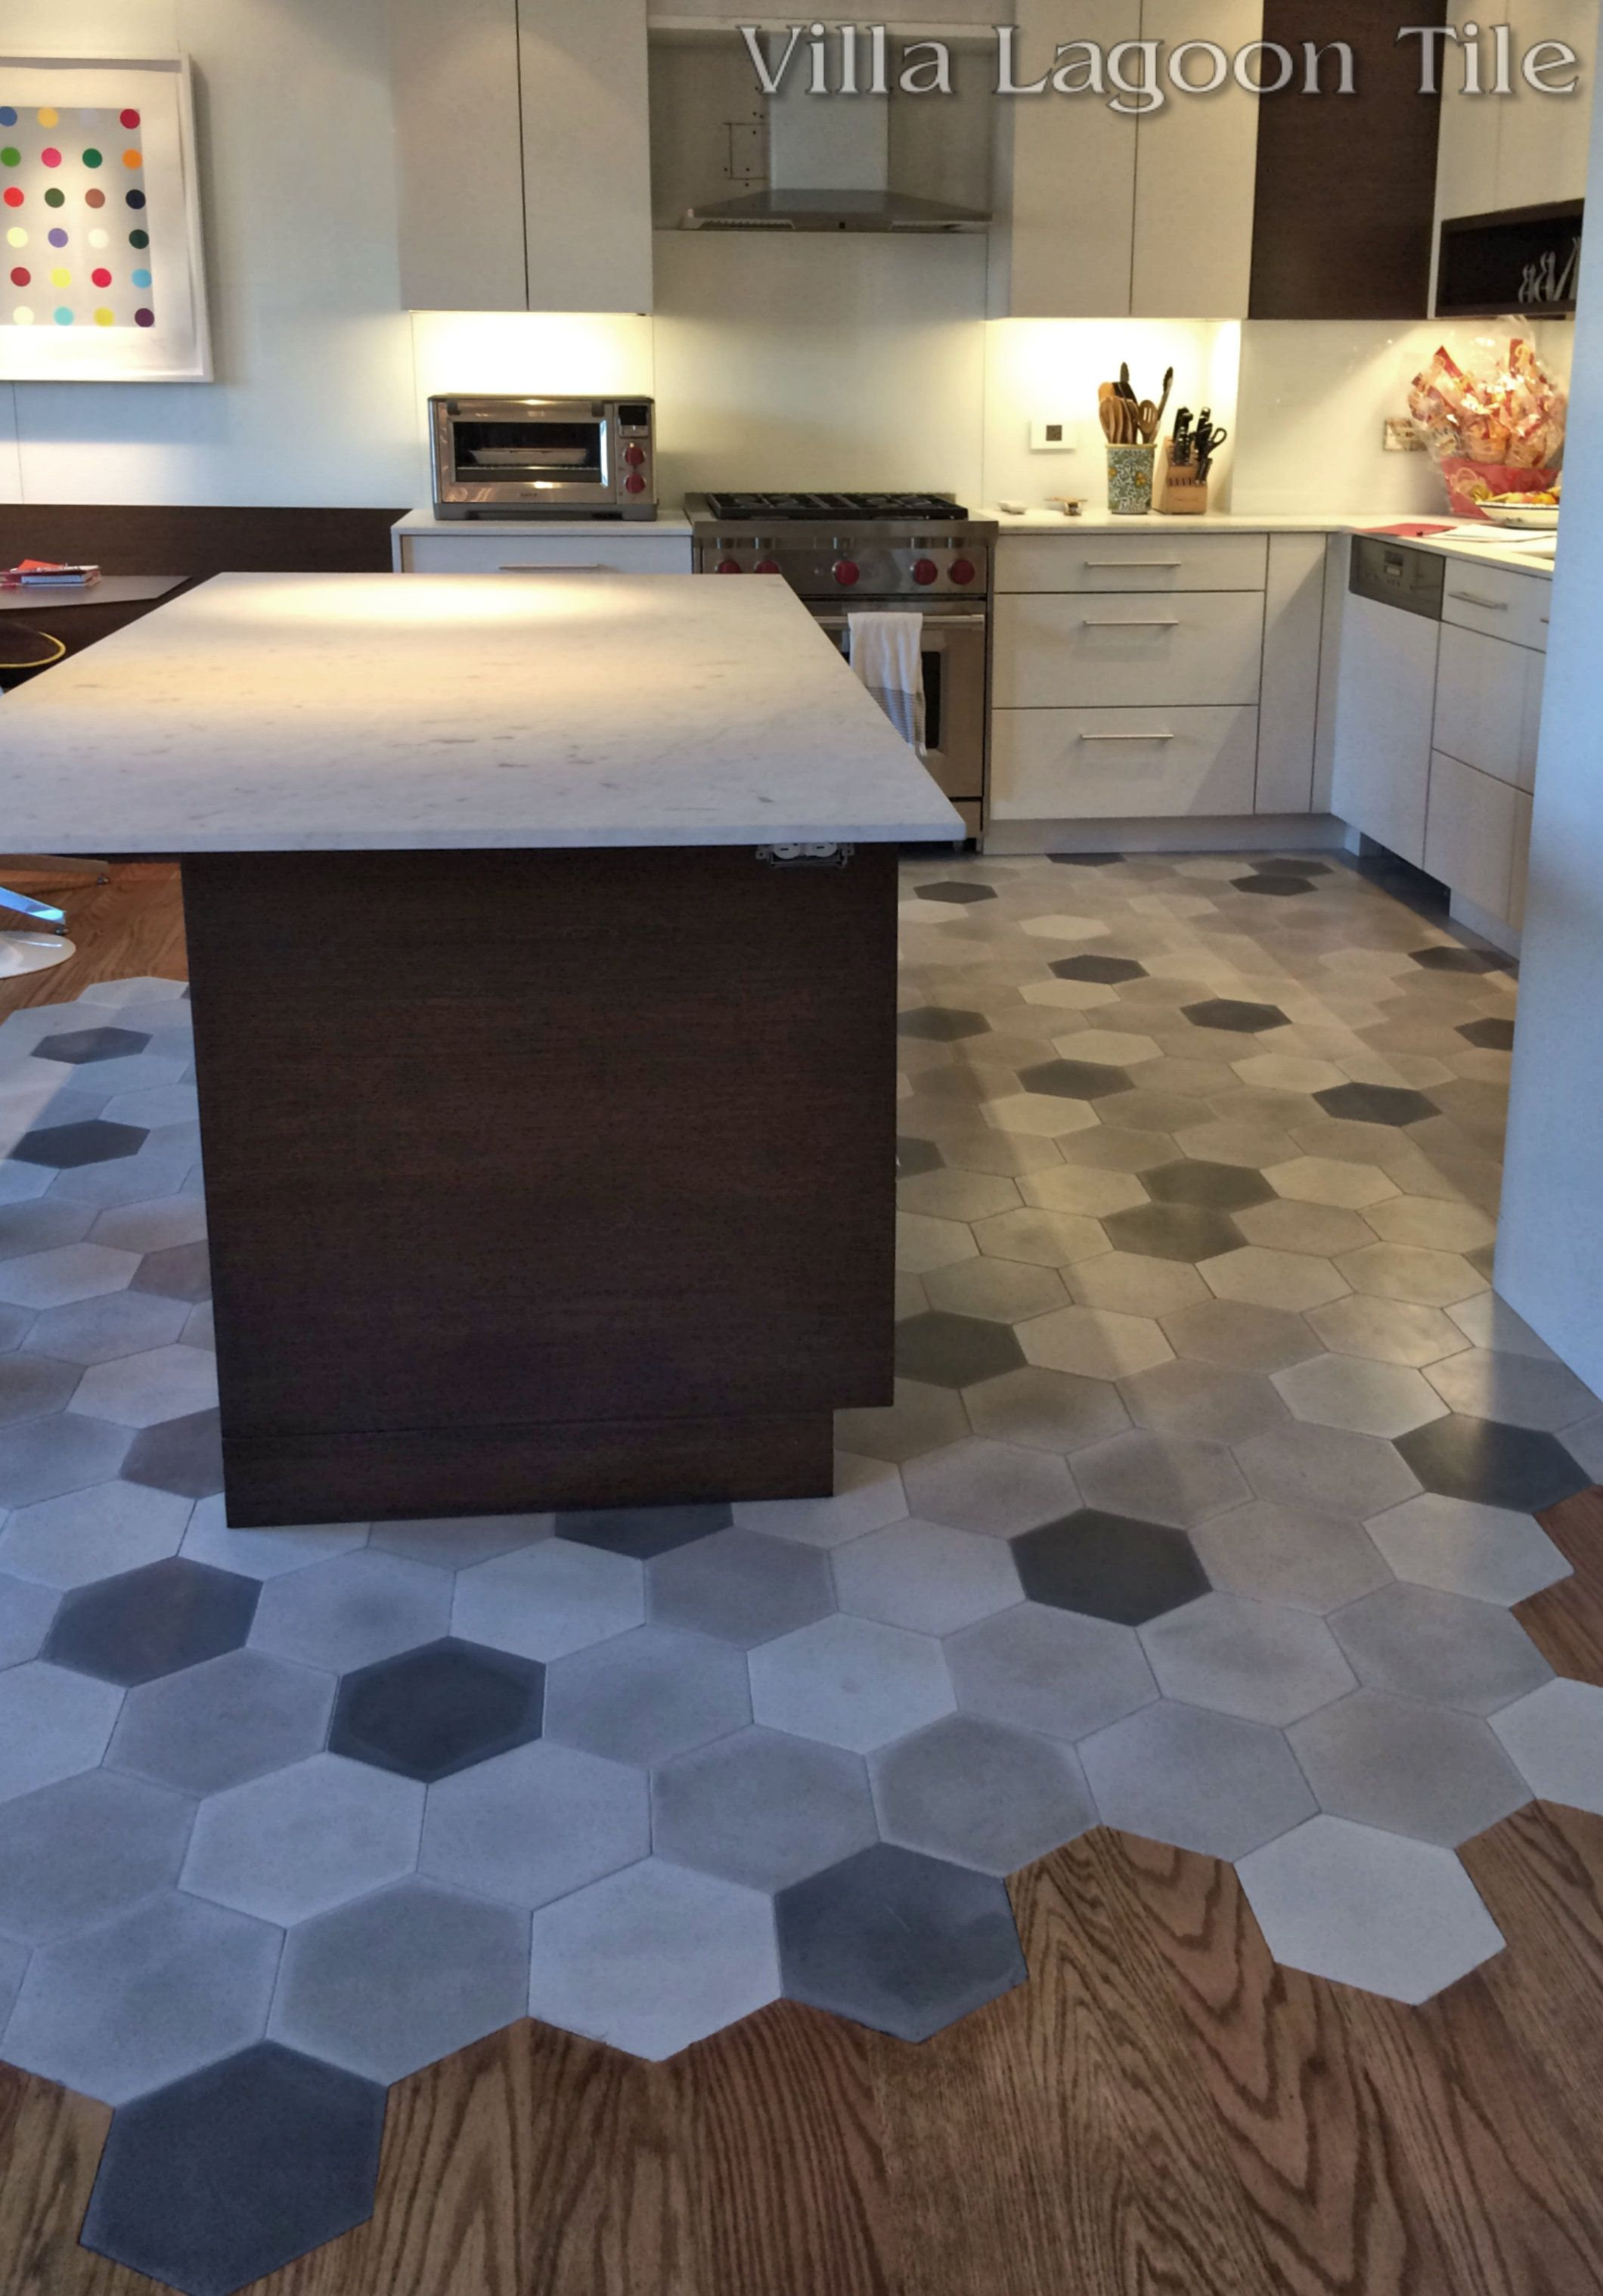 Tile Kitchen Floors Tiling Trends 2016 Hexagons Topps Tiles And Hardwood Floors